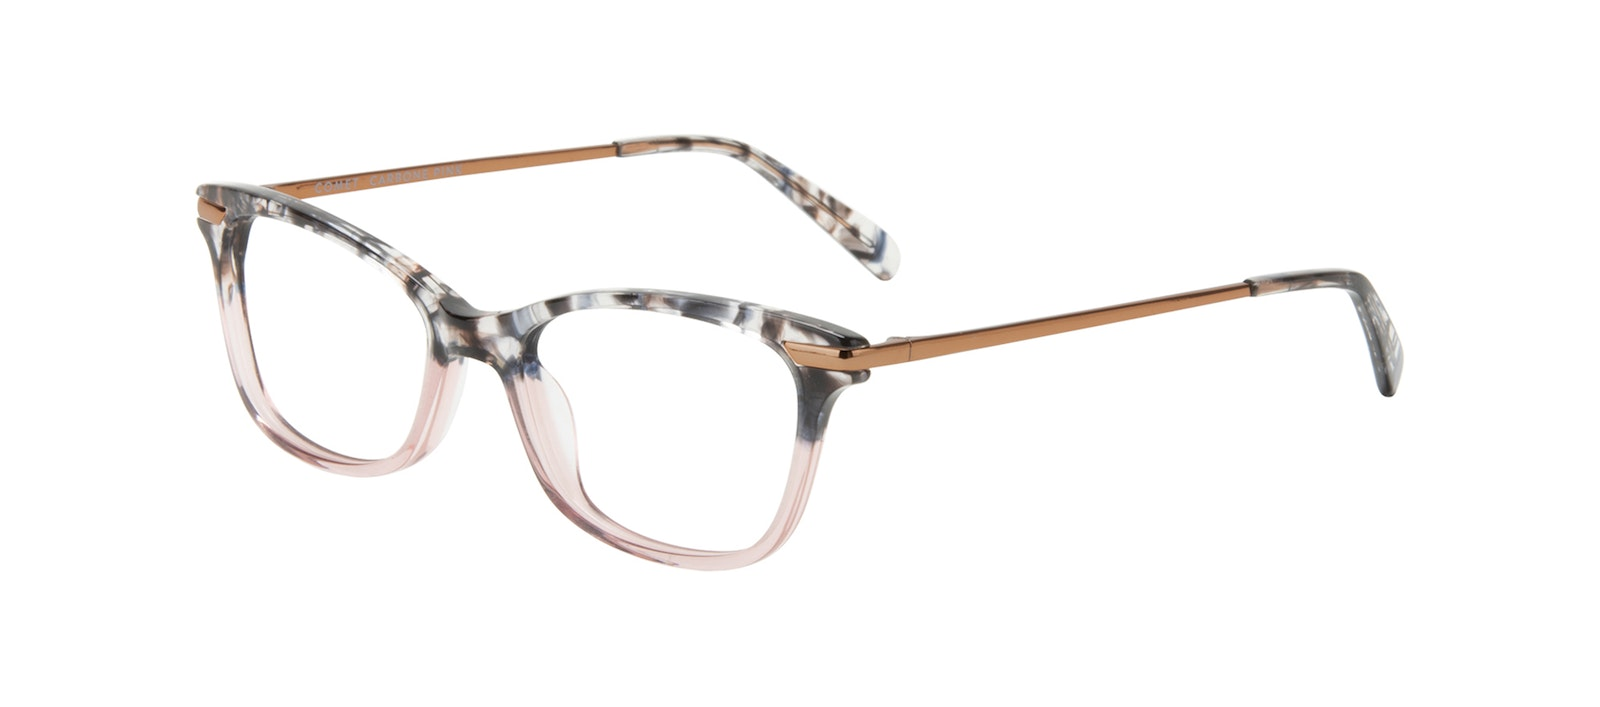 Affordable Fashion Glasses Rectangle Eyeglasses Women Comet II Carbone Pink Tilt